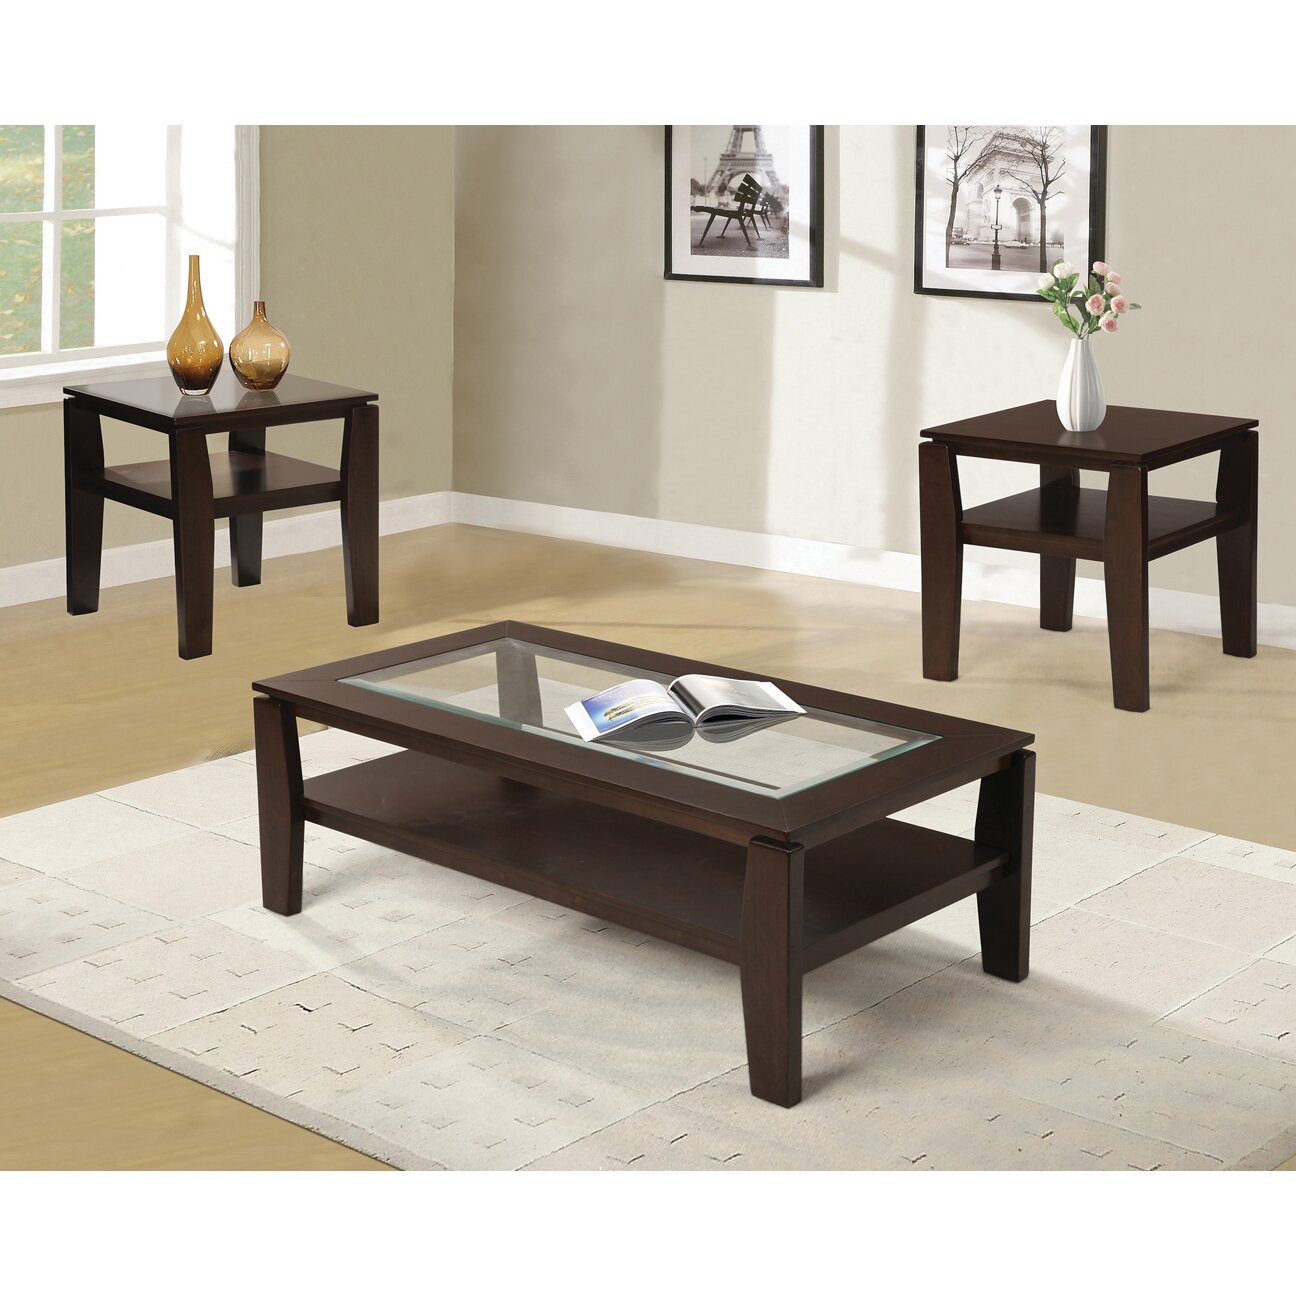 Red Barrel Studio Golder 3 Piece Coffee Table Set Reviews Wayfair